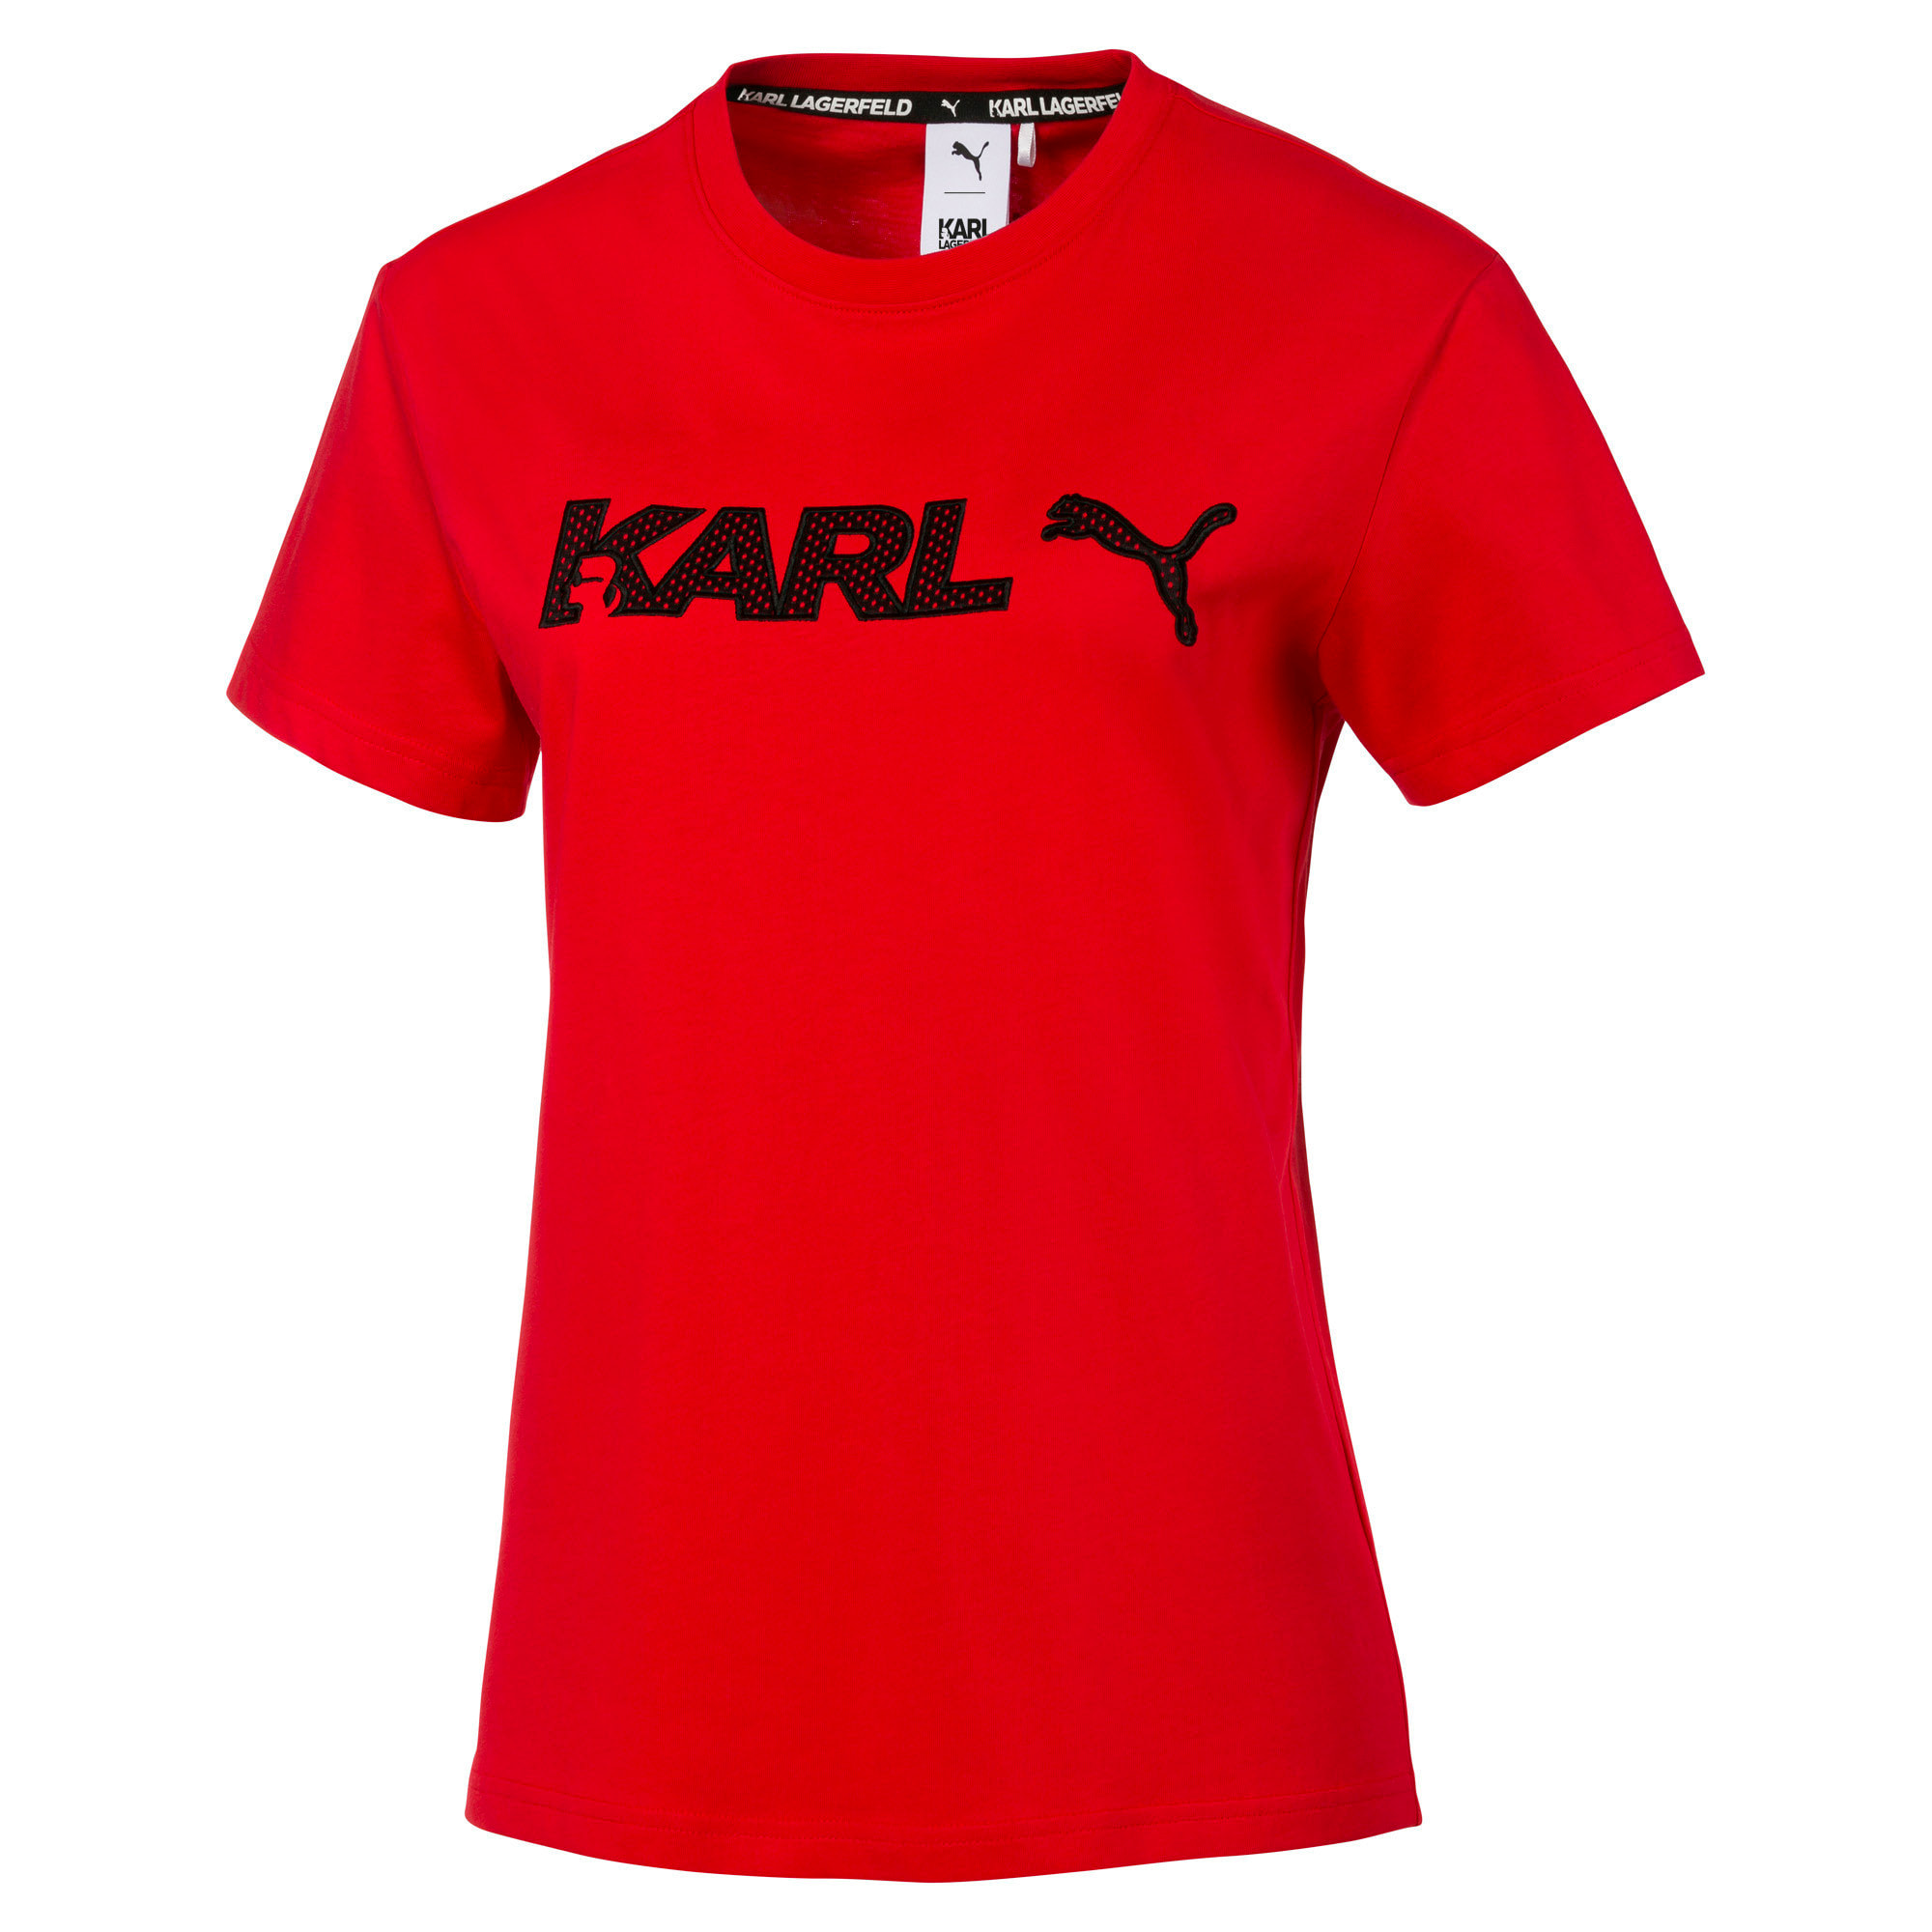 Thumbnail 1 of PUMA x KARL LAGERFELD Damen T-Shirt, High Risk Red, medium